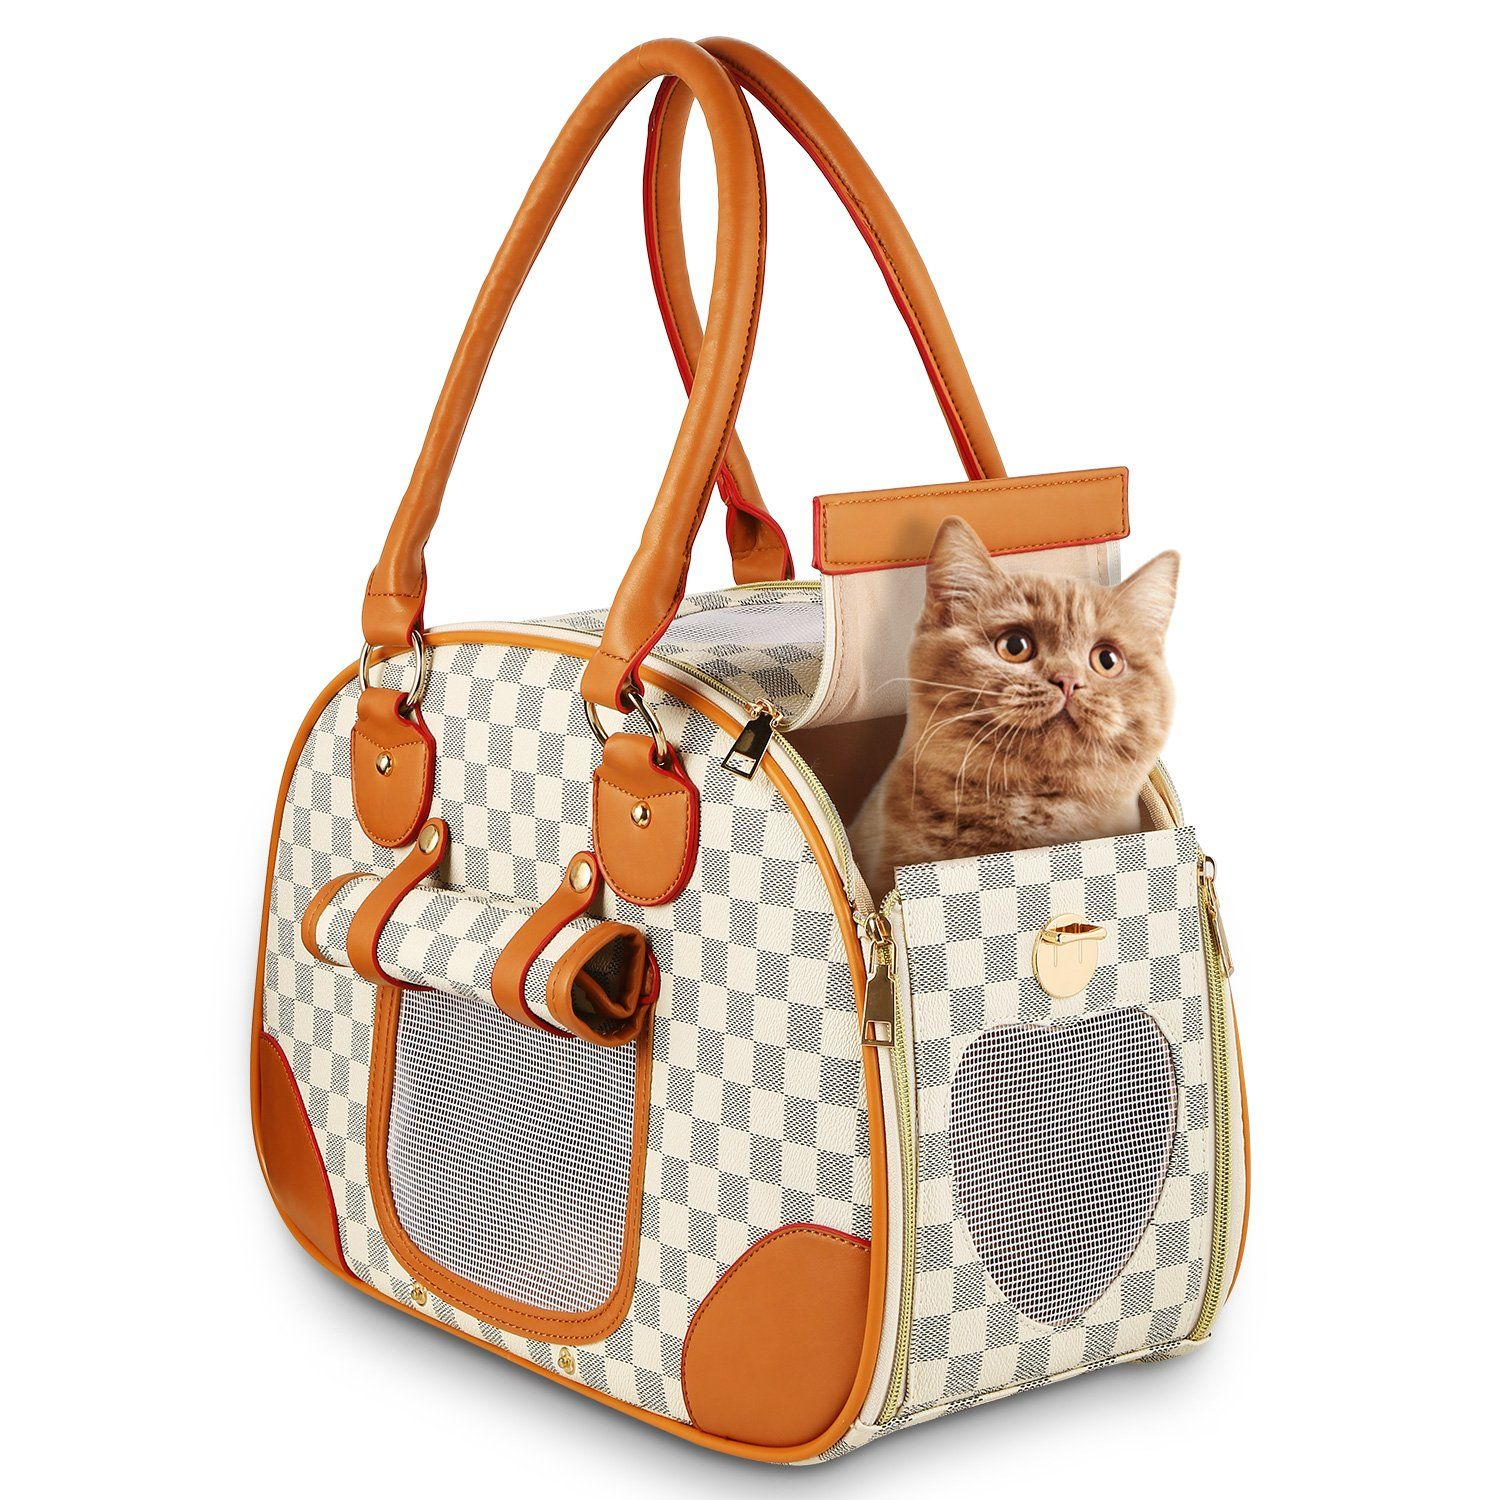 4158a926cc wot i Soft Sided Pet Carrier Cat Carrier Dog Carrier Airline Approved Pet  Carrier Suitable for